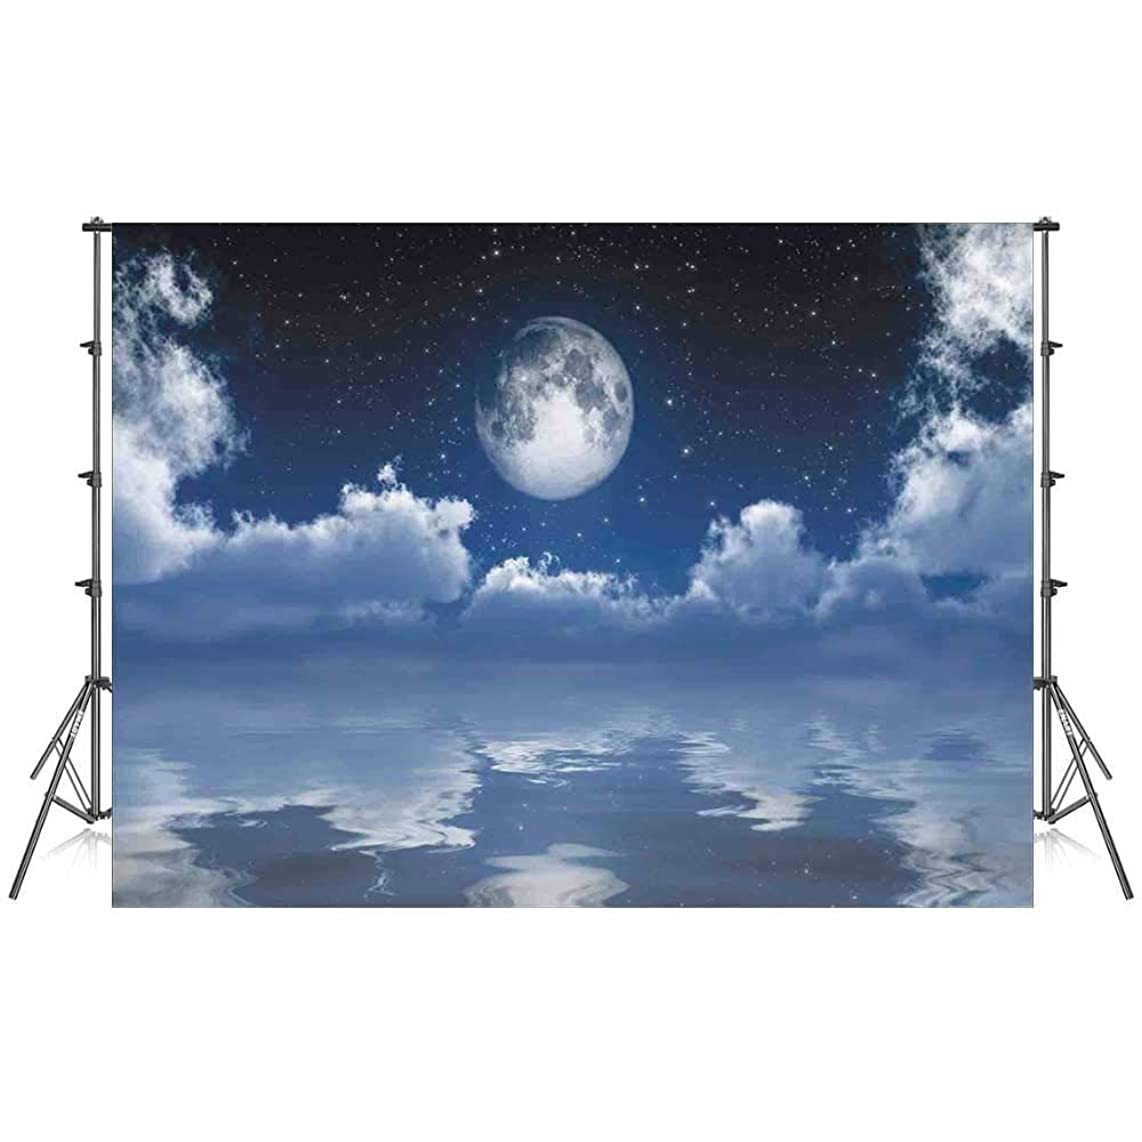 Ocean Stylish Backdrop,Scene of Mystic Full Moon with Majestic Cloudscape Reflected on The Sea for Photography Festival Decoration,86''W x 59''H